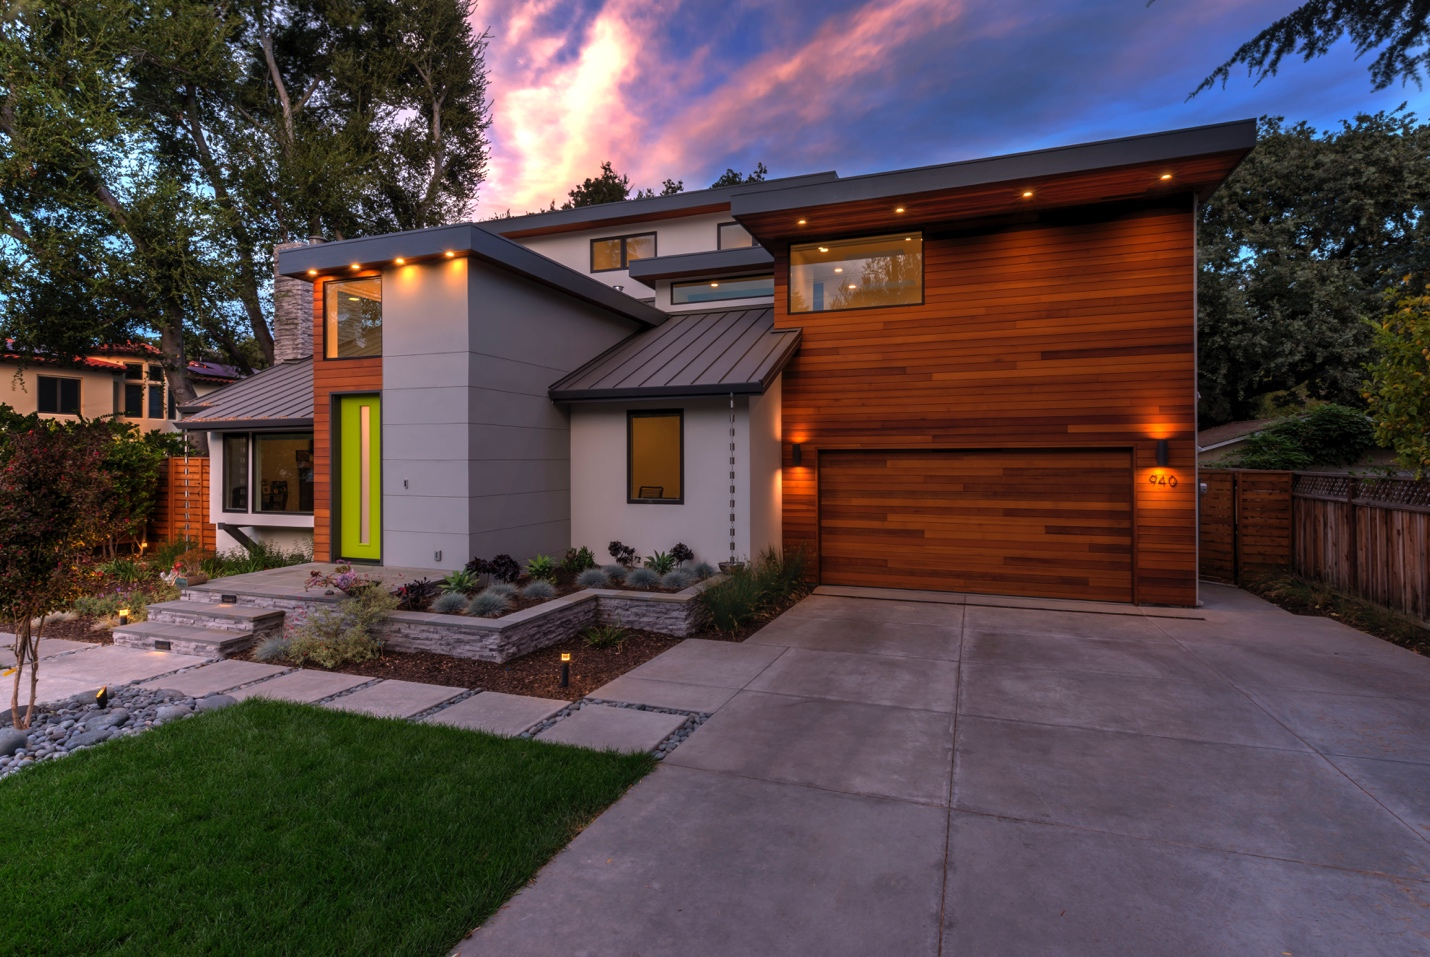 Exterior design and lawn,Los Altos